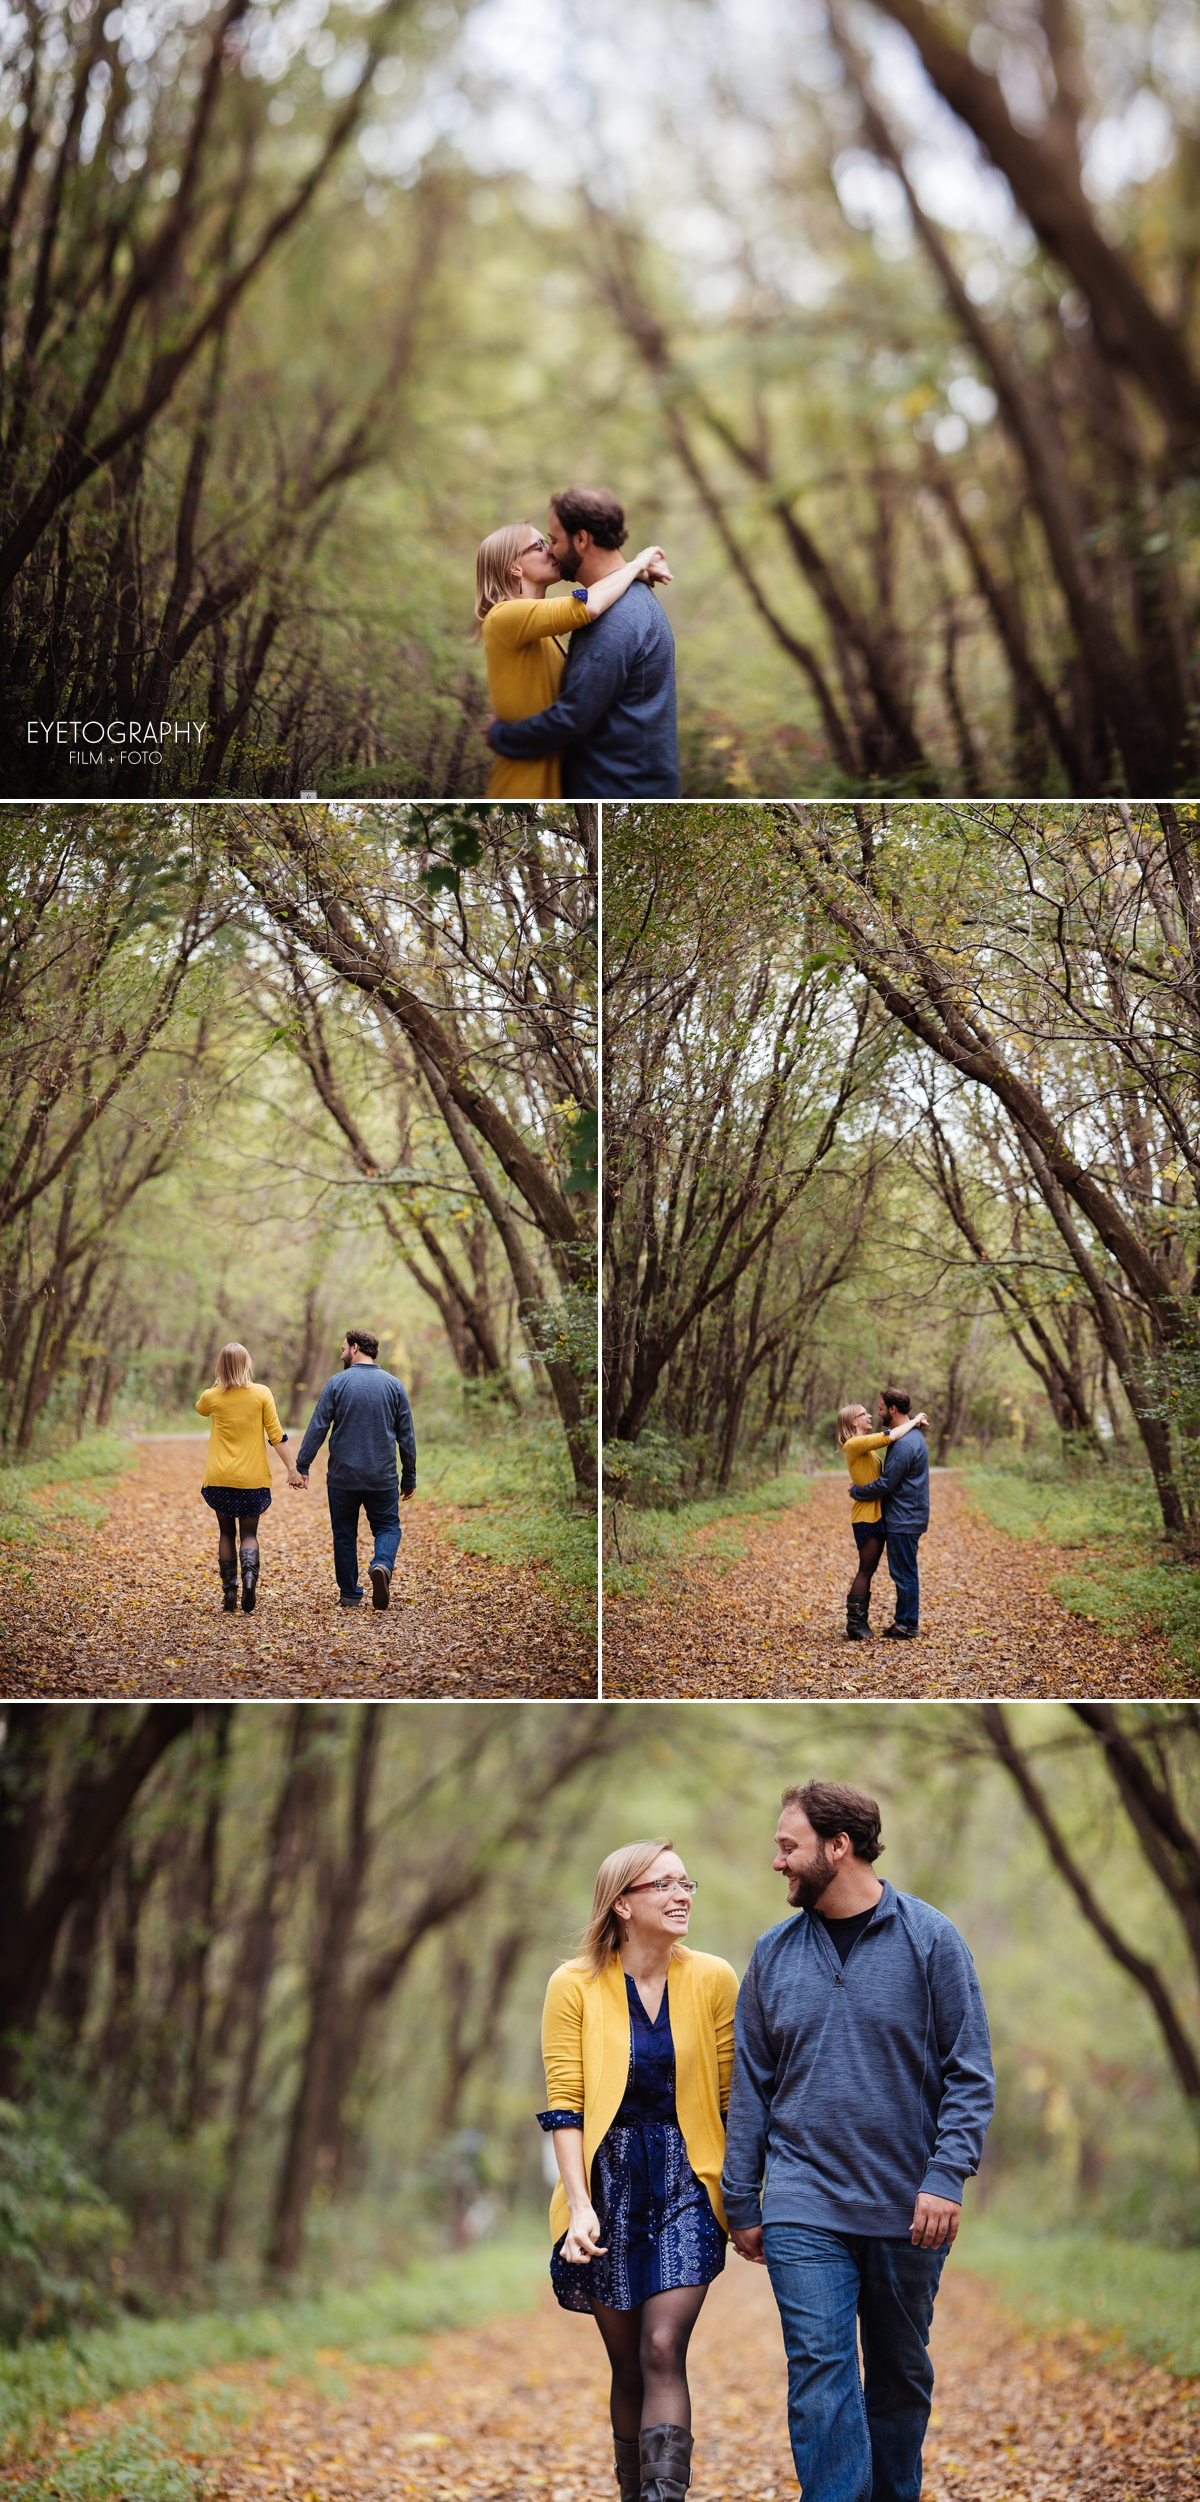 Minneapolis Minnesota Engagement Photography | Eyetography Film + Foto | Kayla + John